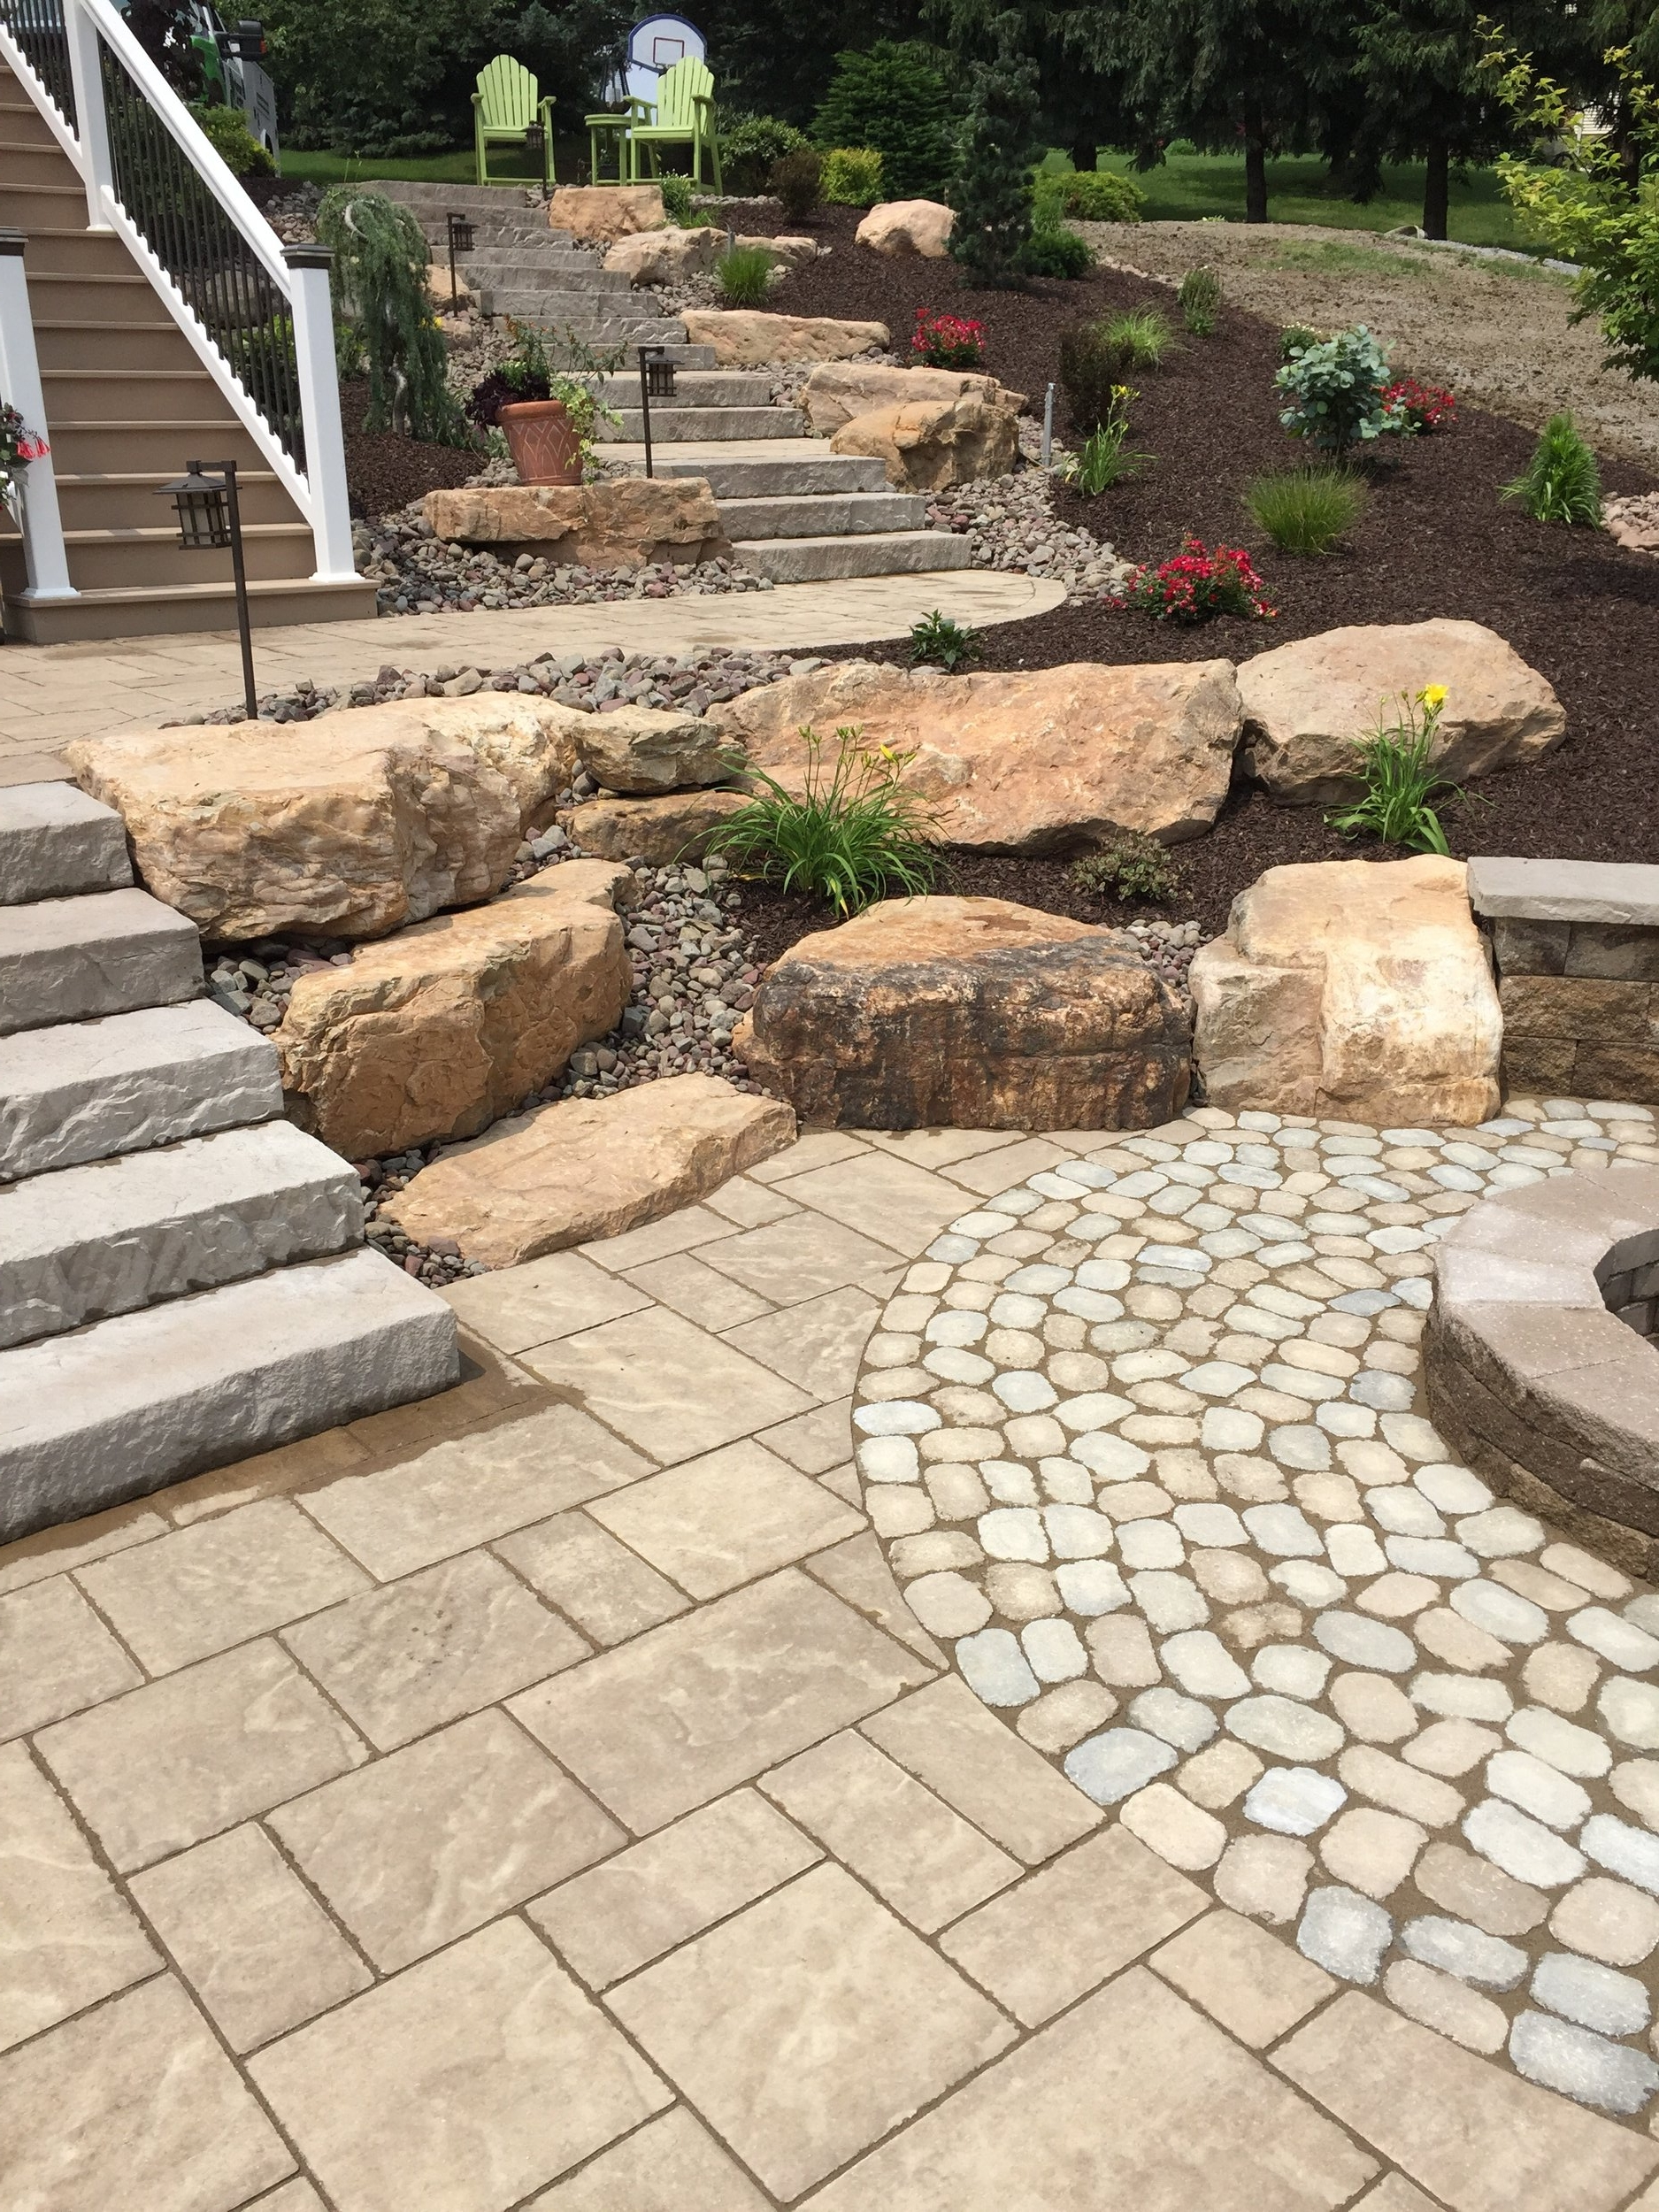 Experienced landscape pavers inWayne Township, PA